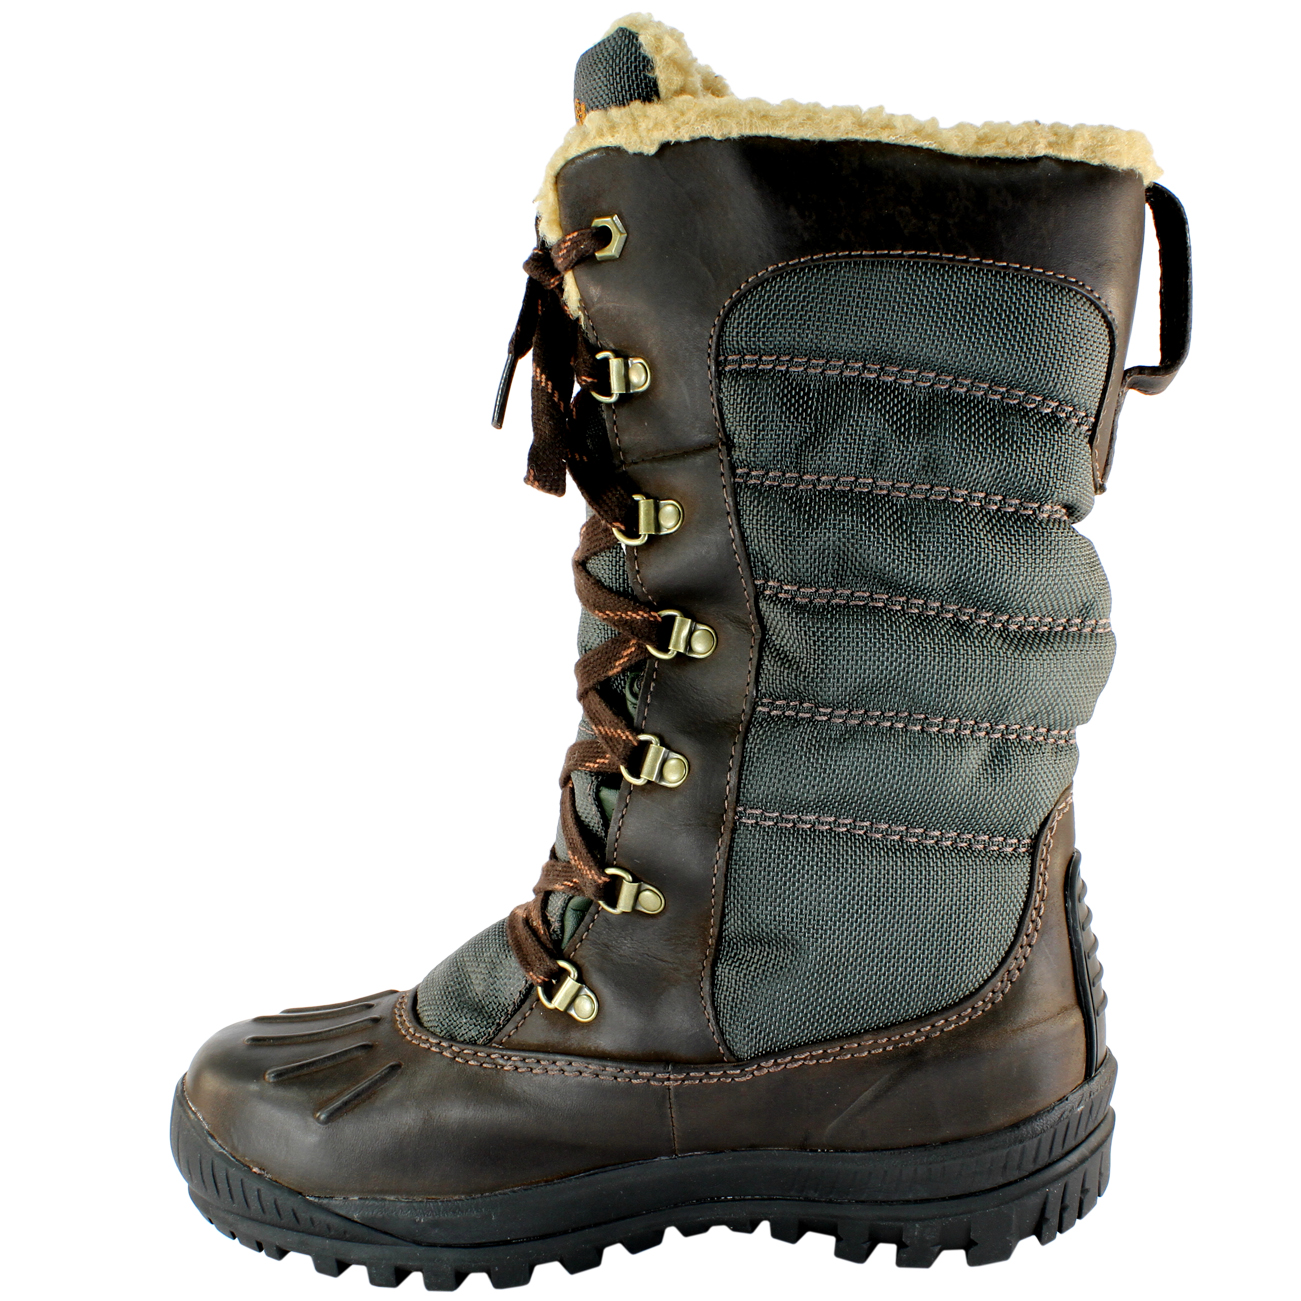 Womens Timberland Mount Holly Tall Earthkeepers Mid Calf Boots